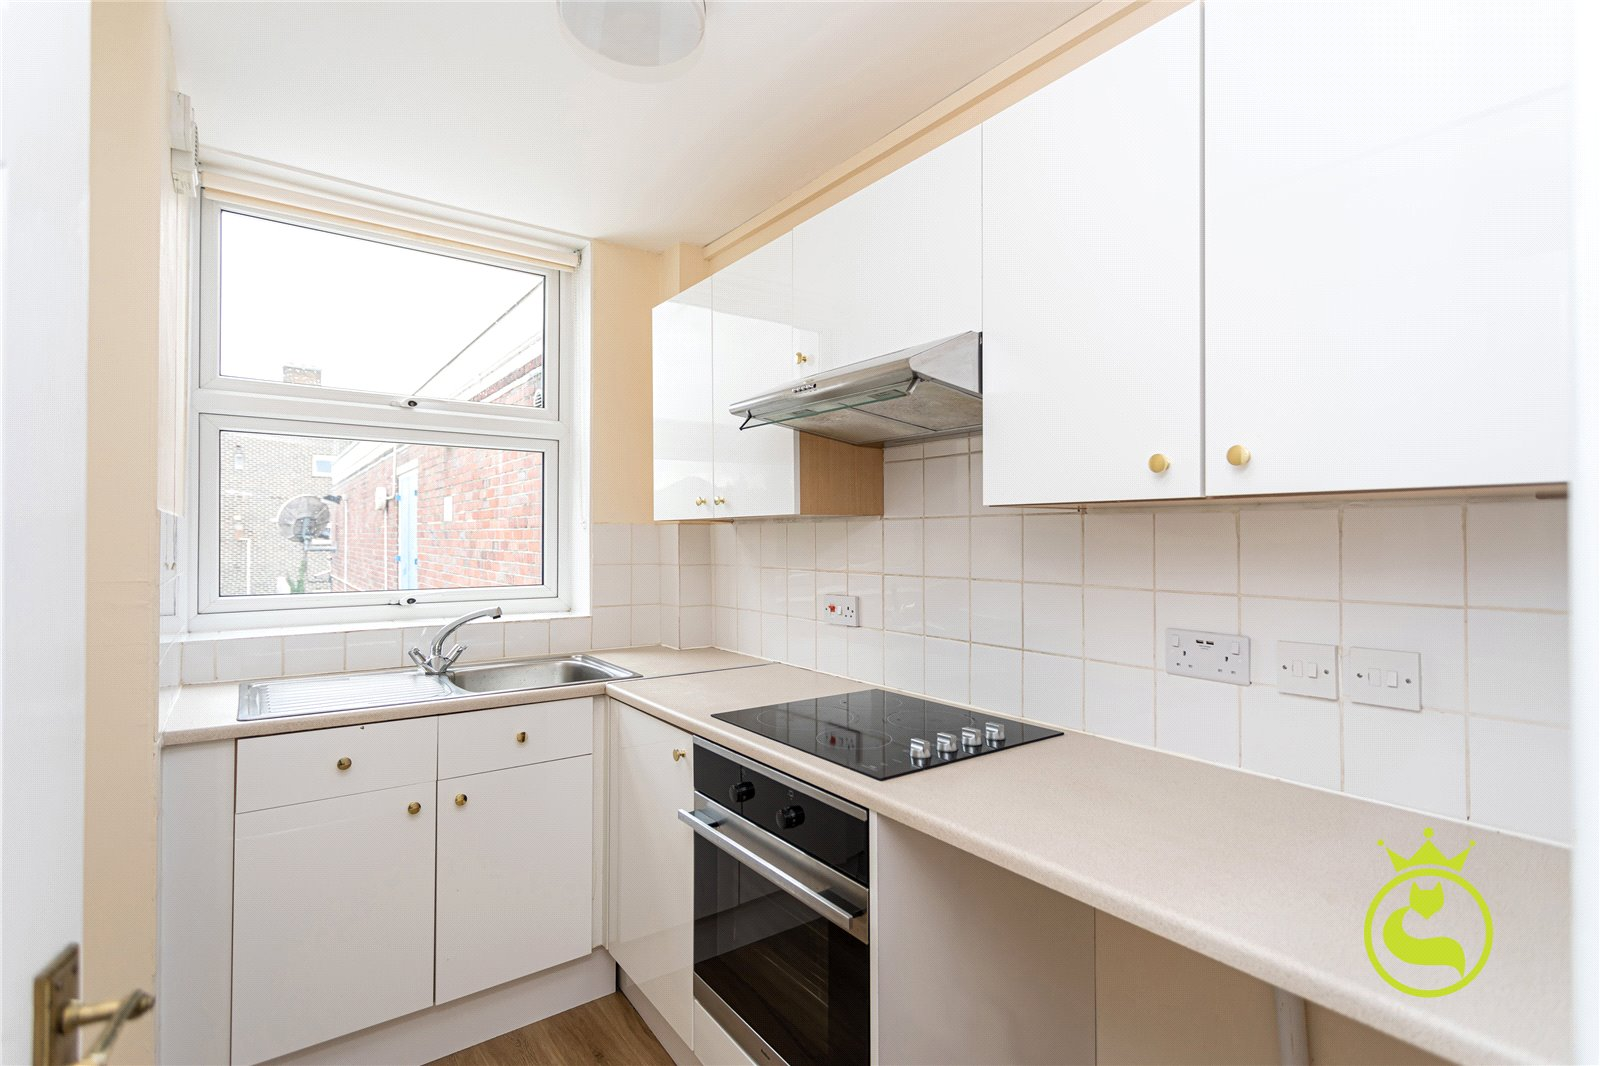 2 bed apartment to rent in Wimborne Road, Bournemouth, BH11